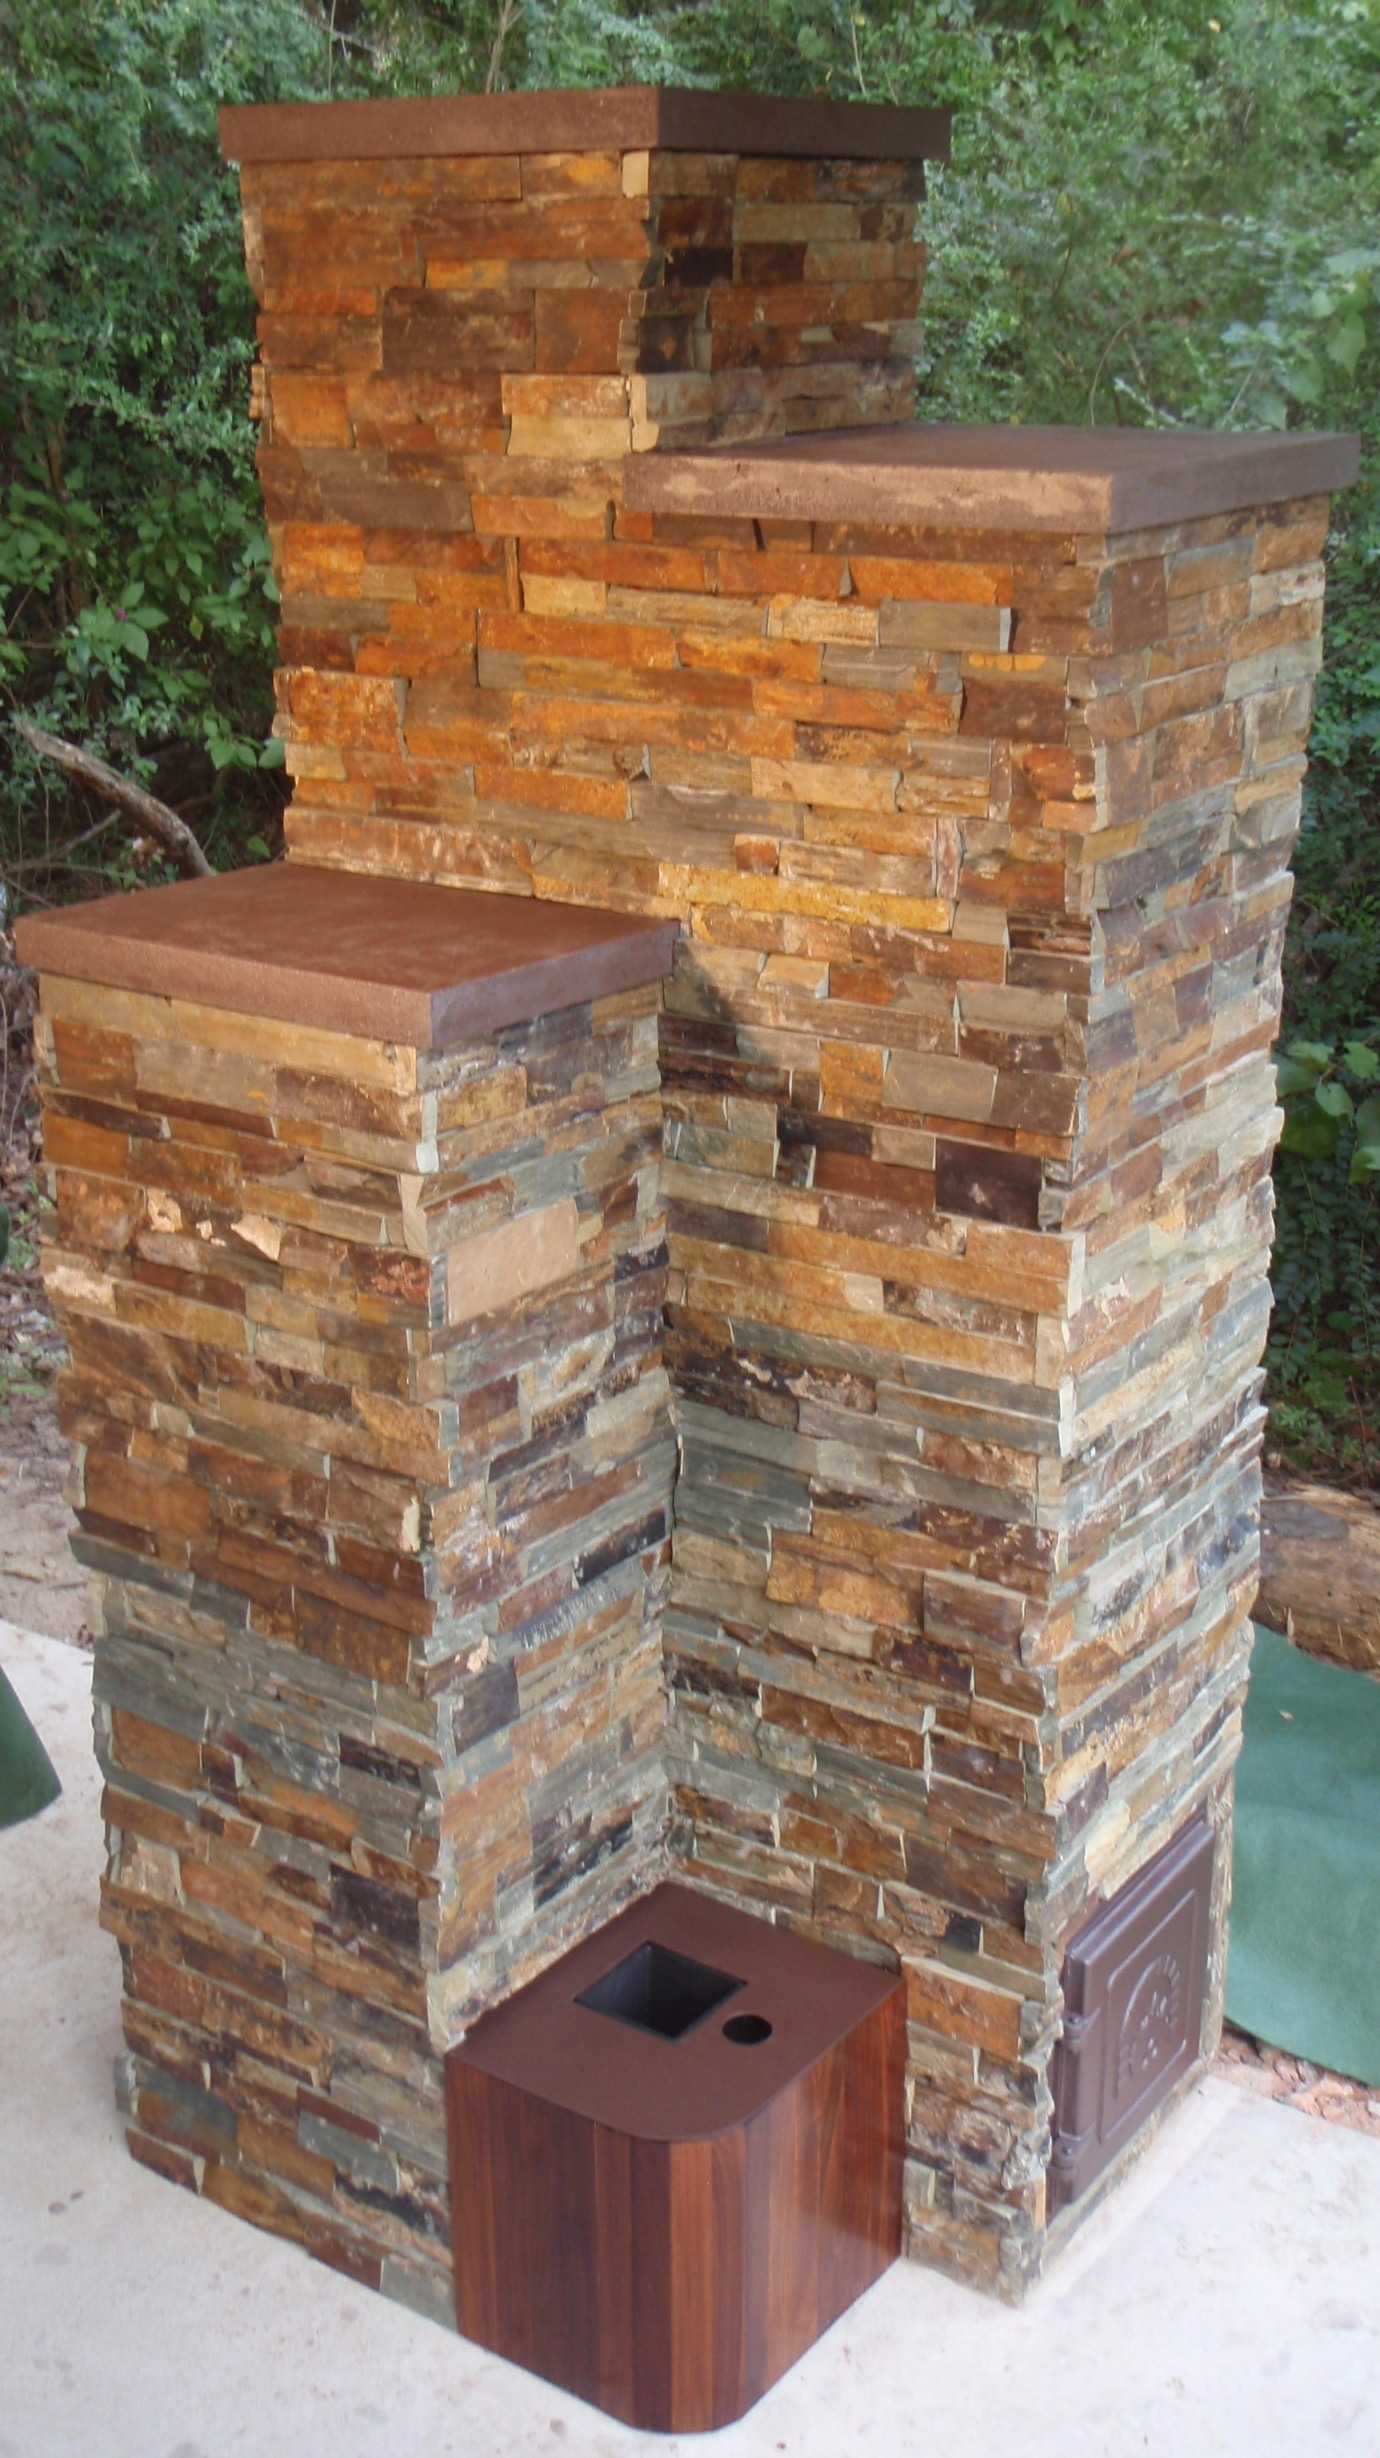 Rocket Heater Masonry Stove Built Using Flue Pipes And A